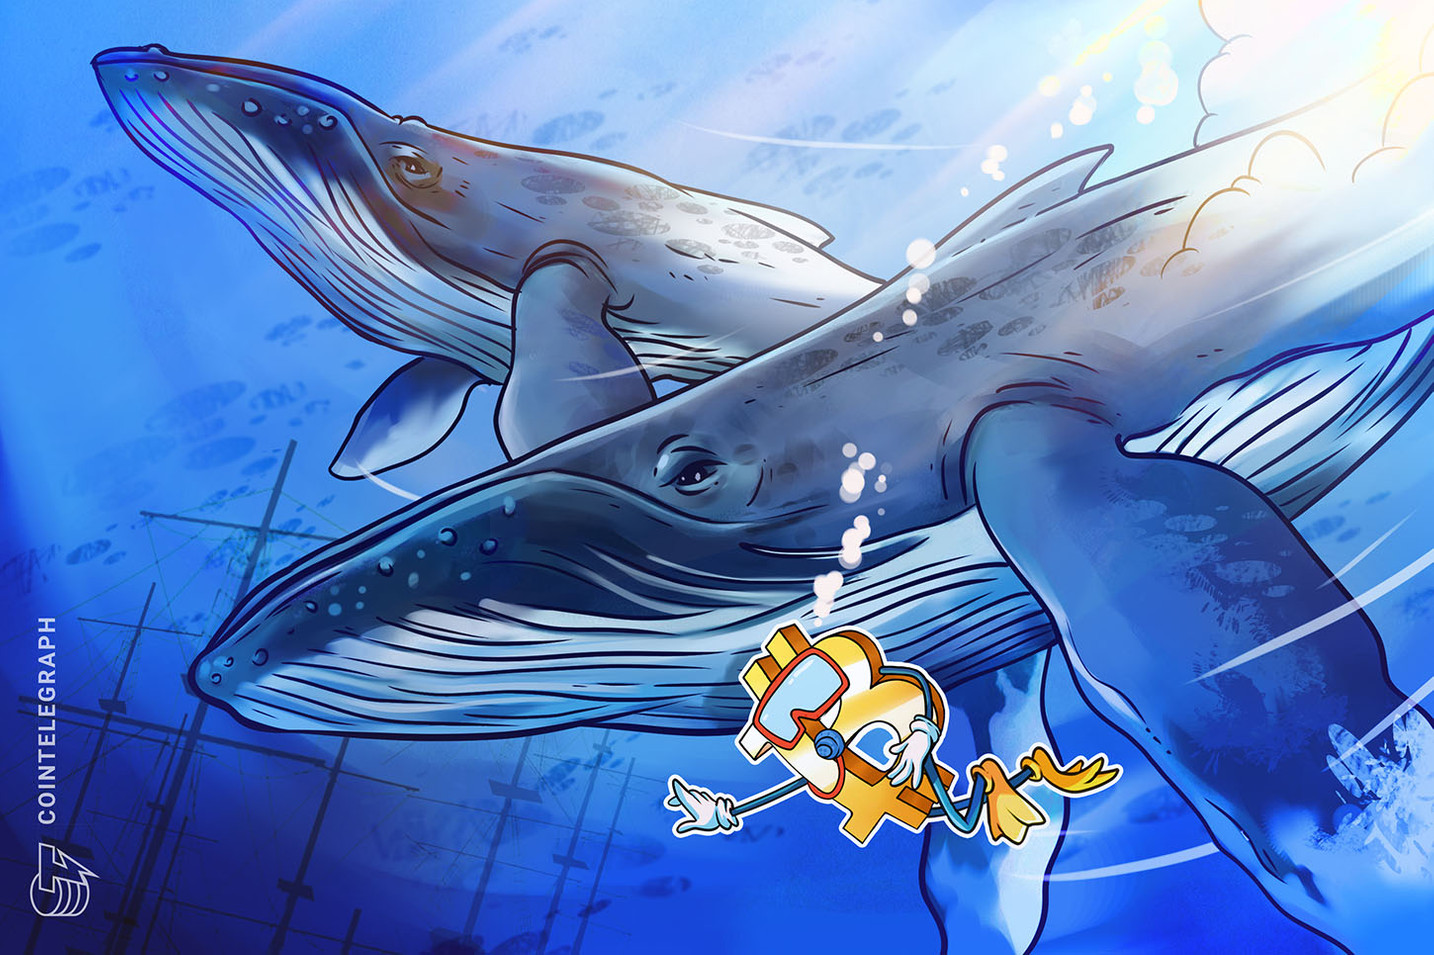 Bitcoin whales tread water and hodl despite recent BTC price drop